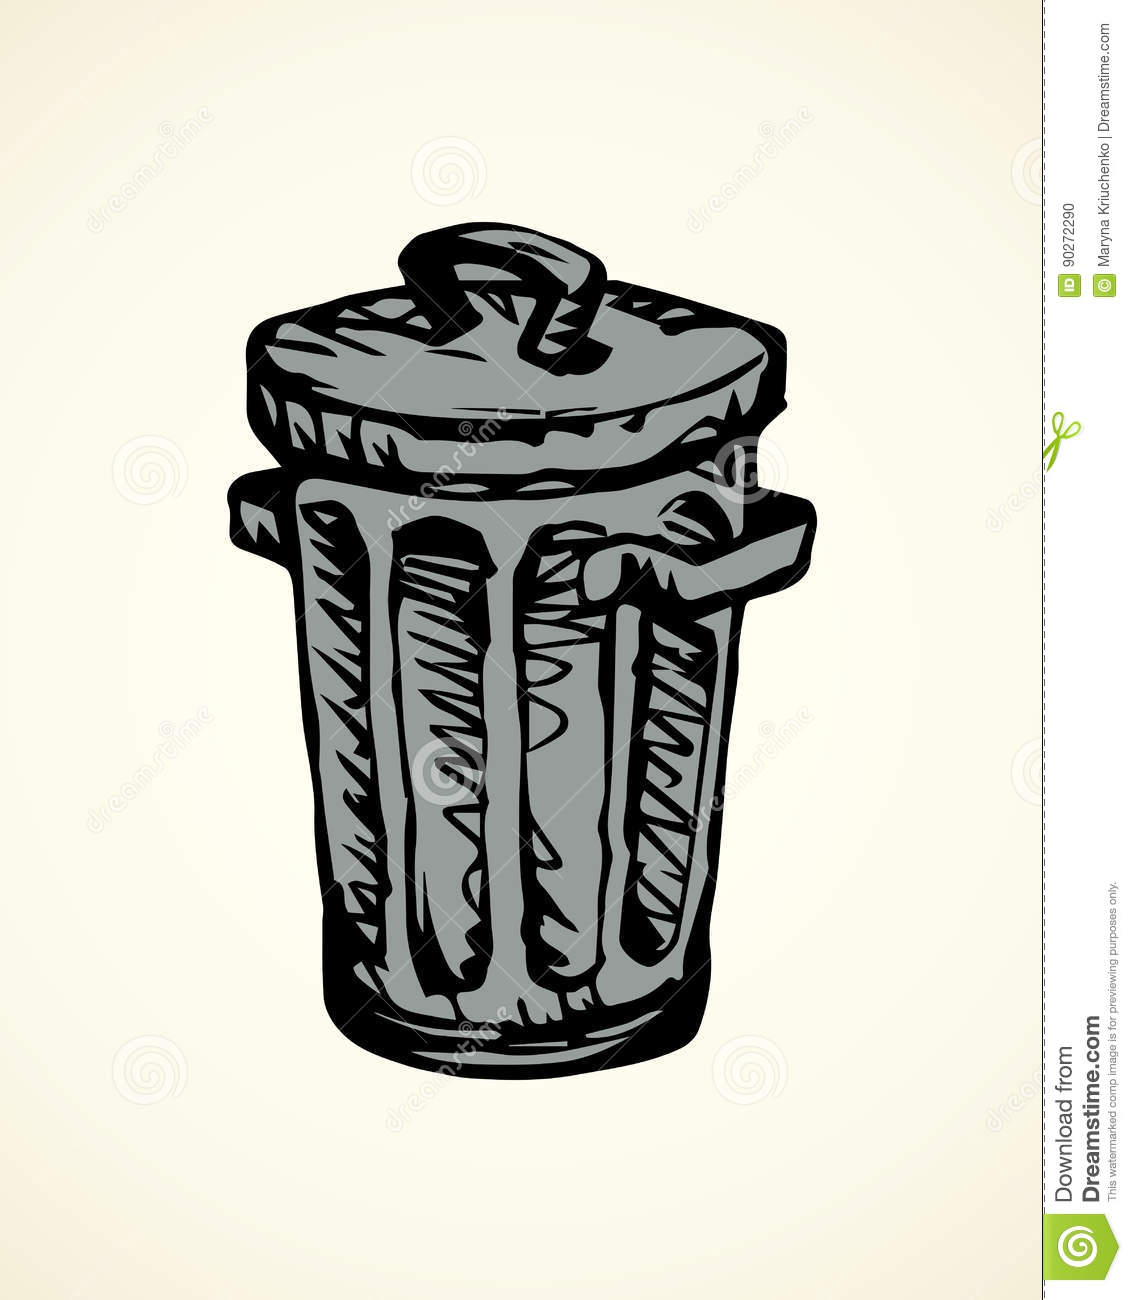 Cool Wastebaskets Cartoon Trash Dumpster Cartoons Illustrations And Vector